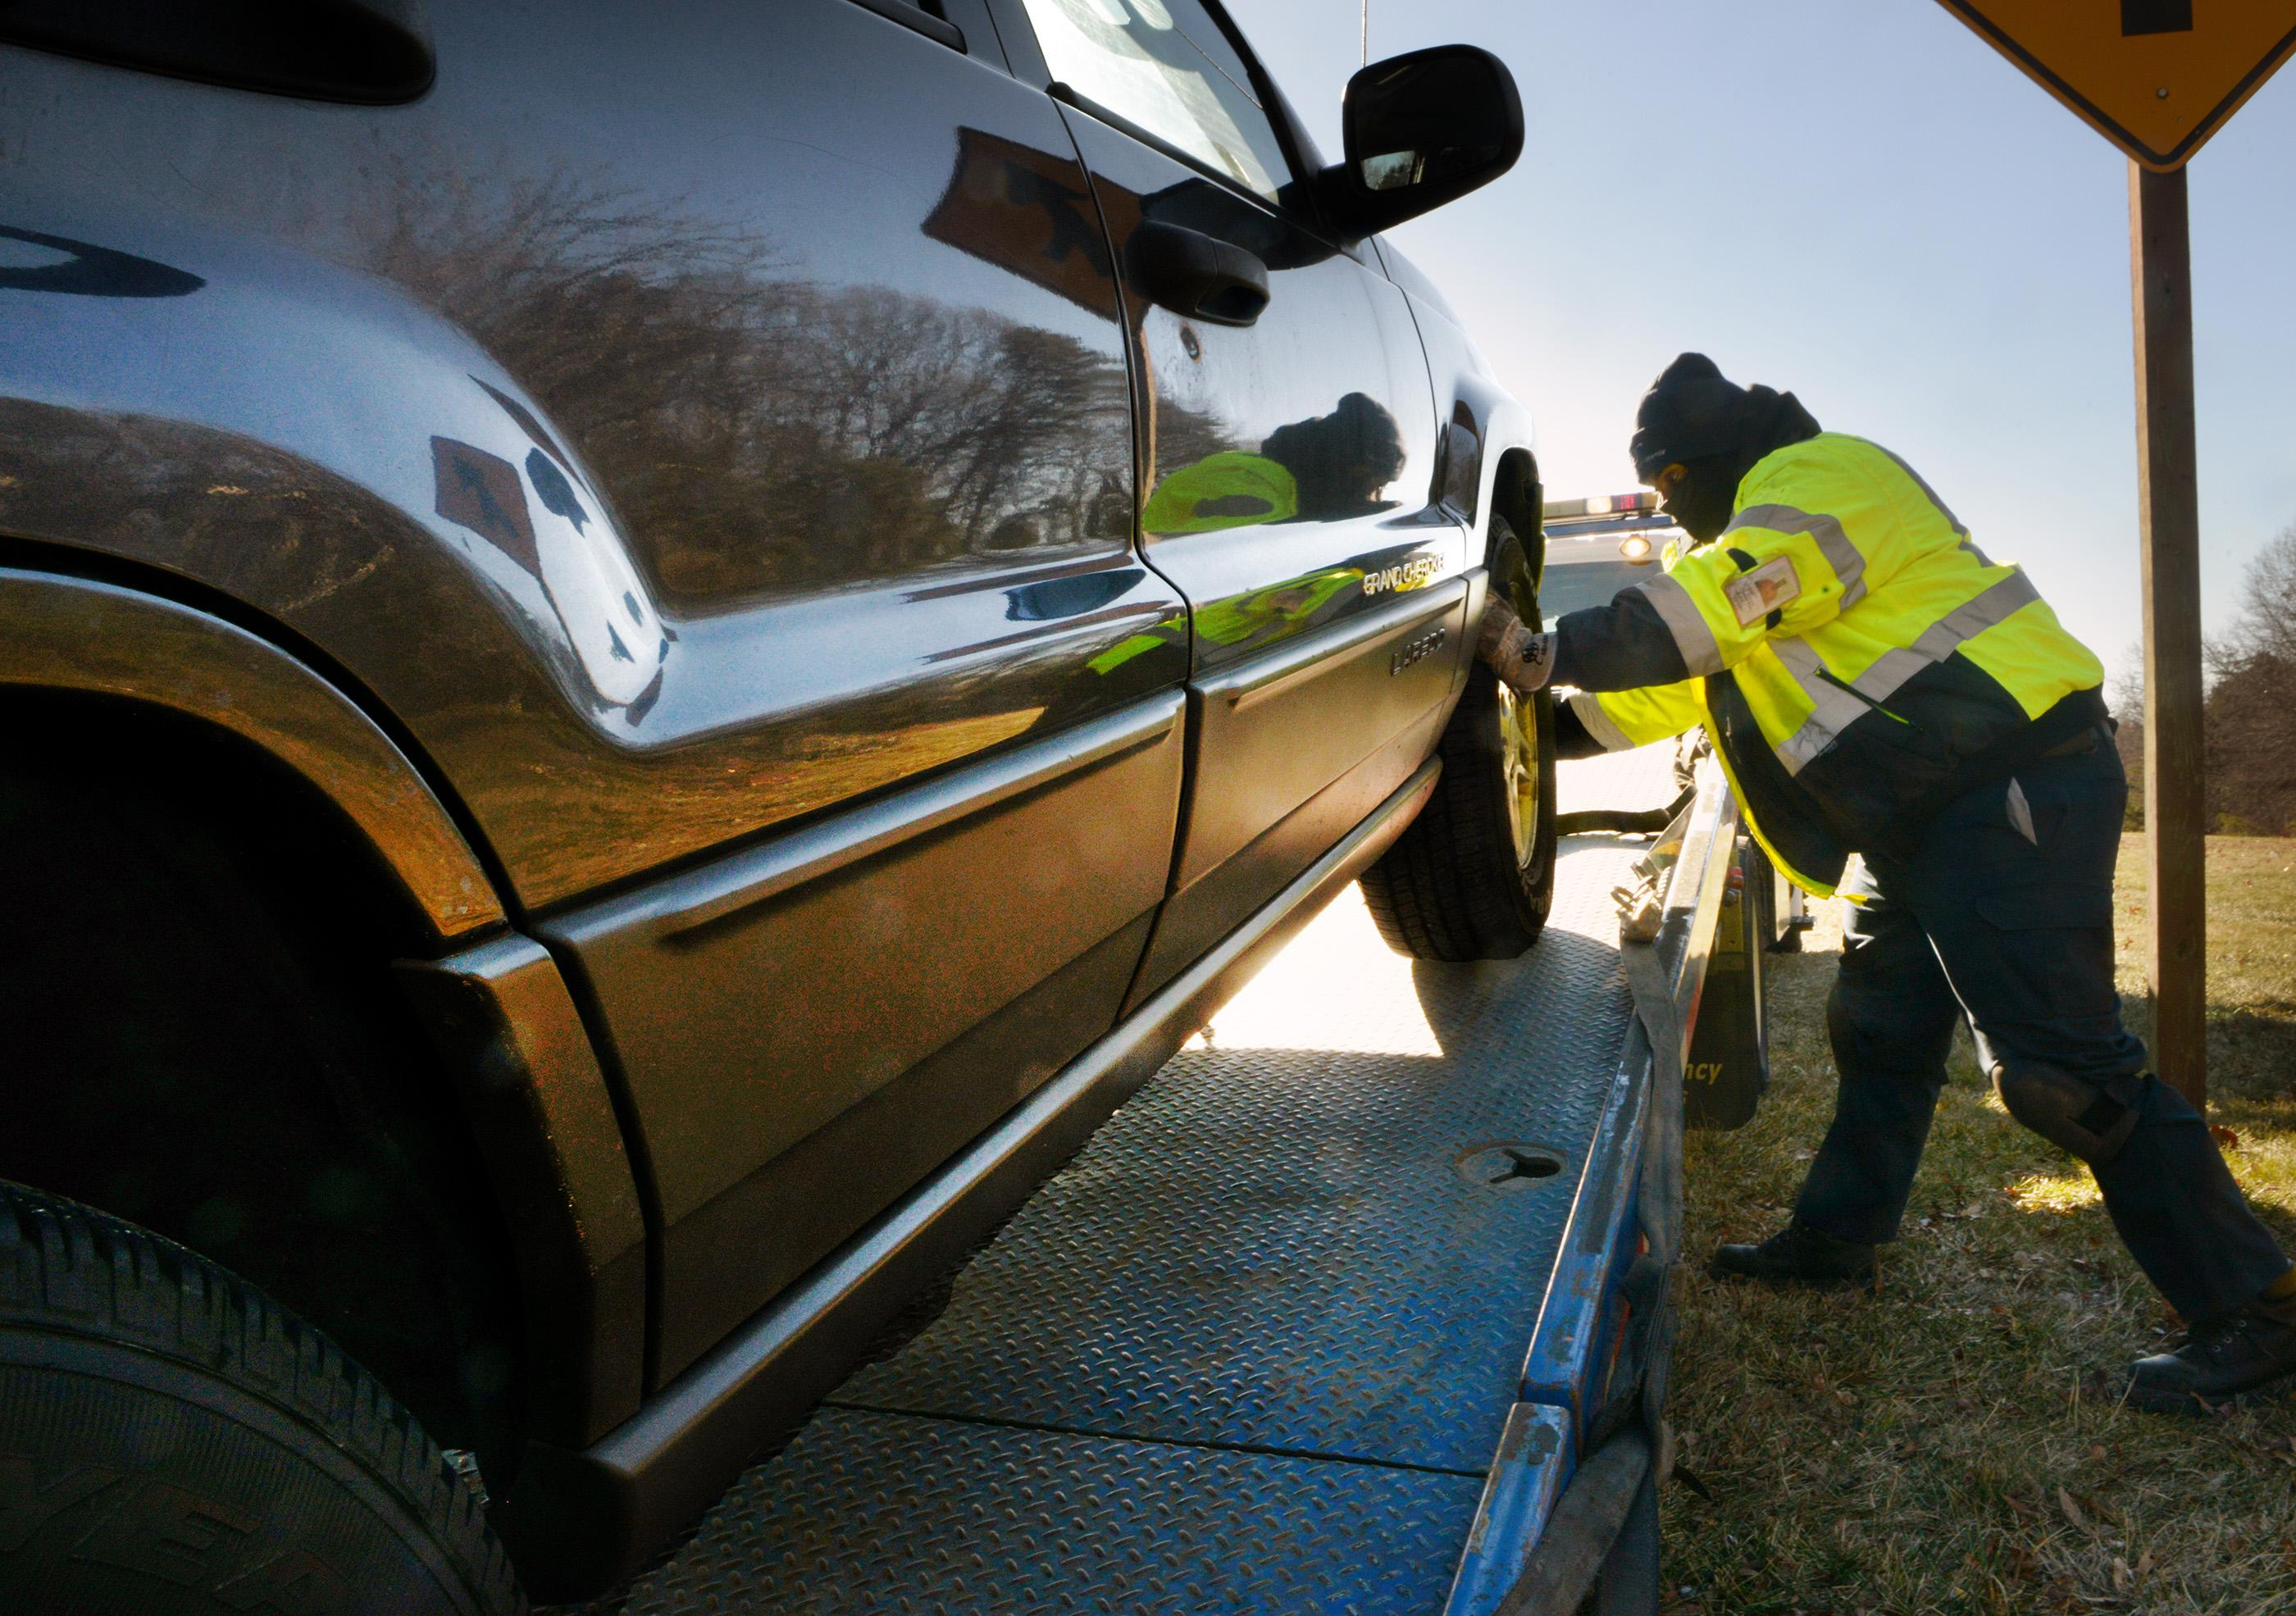 Riding with AAA as extremely cold temperatures lead to many auto problems, in Landover, MD.